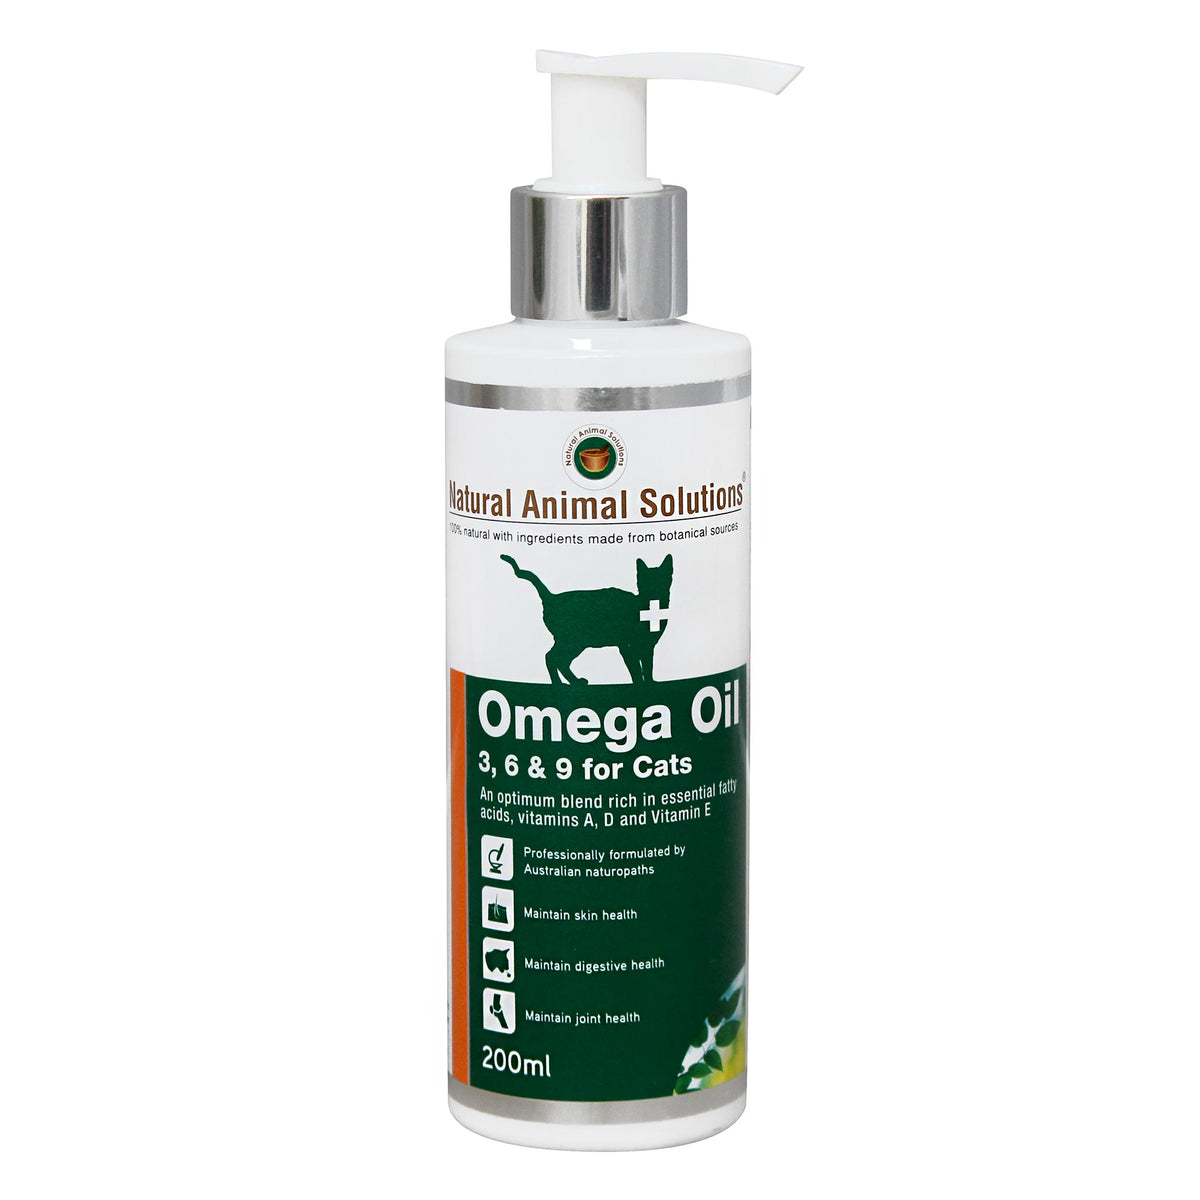 Natural Animal Solutions Omega 3, 6 & 9 for Cats 200mL